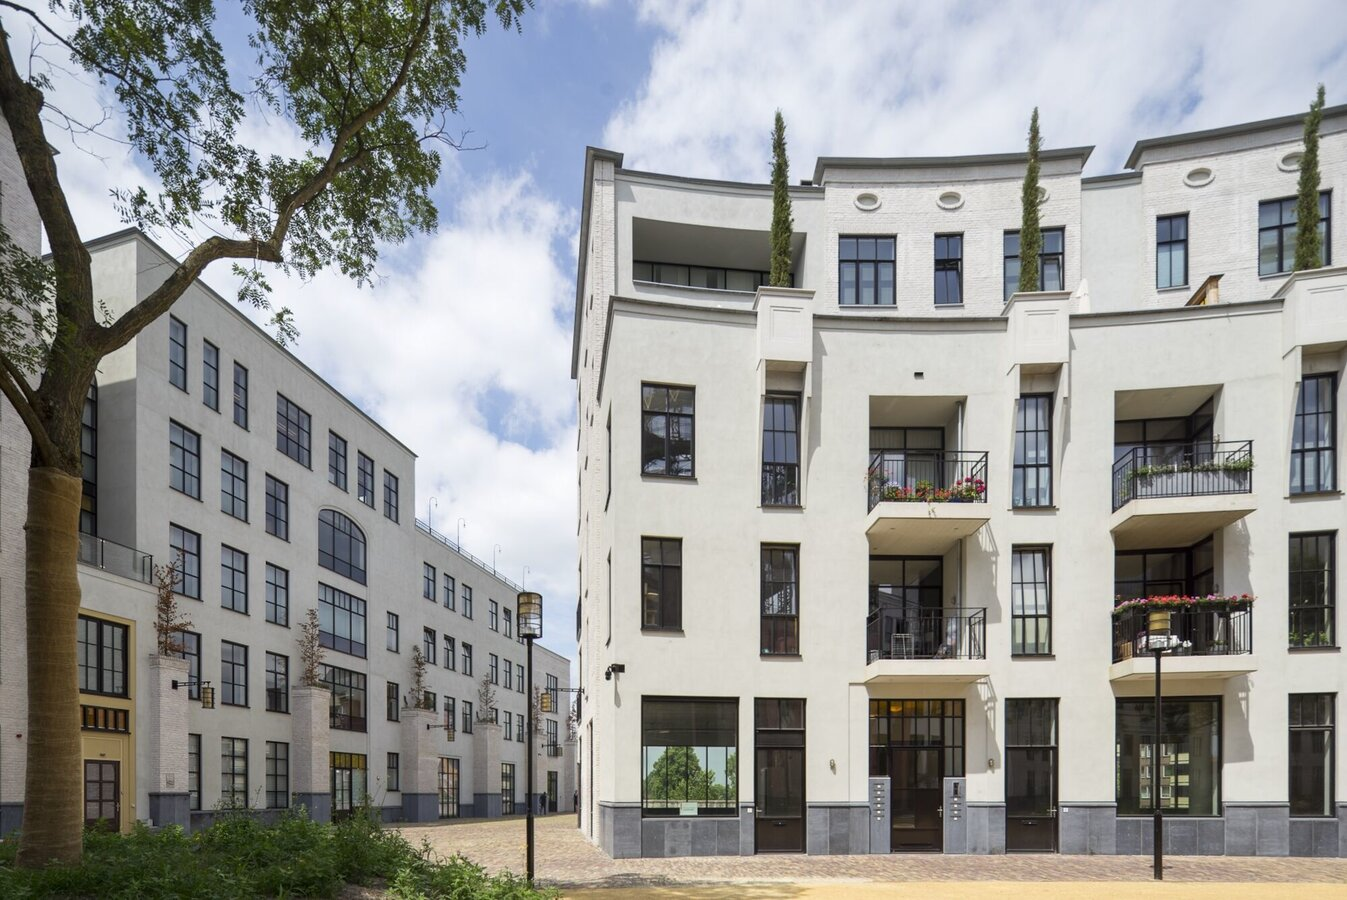 SlimLine 38 Windows and CW 50 Curtain Walls - Apartmentcomplex Maankwartier located in the Netherlands